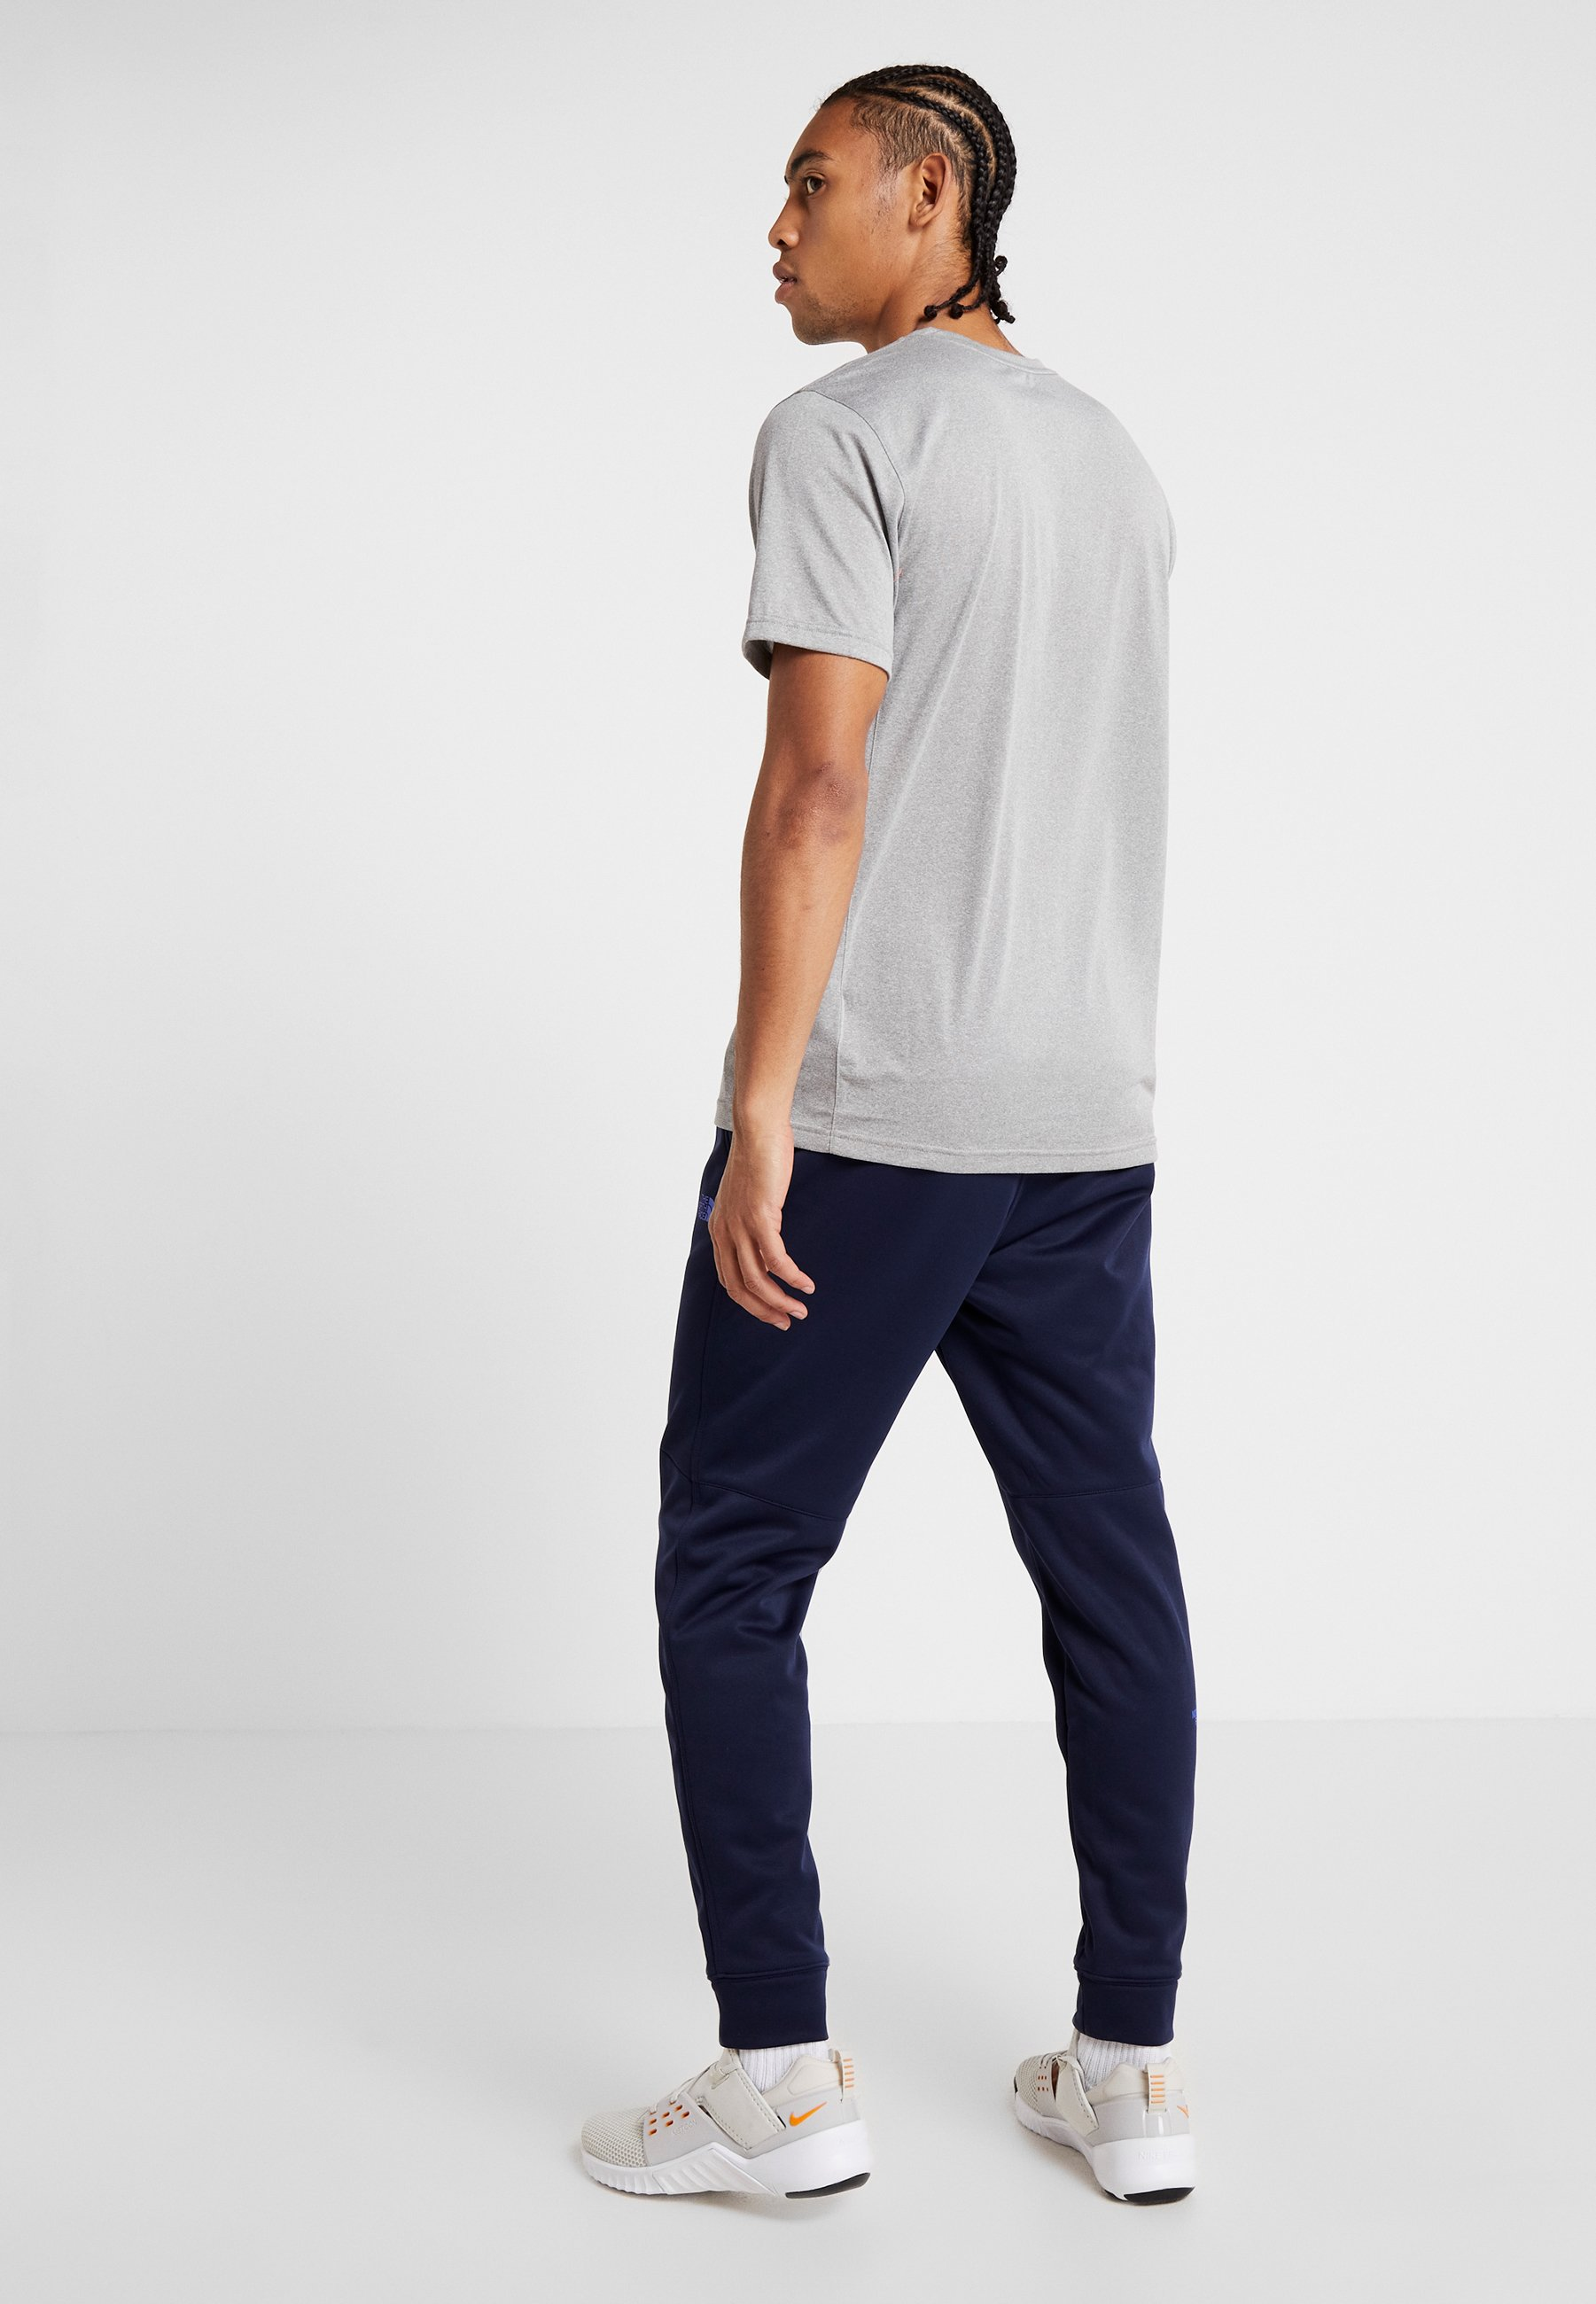 Blue Surgent North Face Montague PantPantalon Survêtement The De 34AR5qcjL